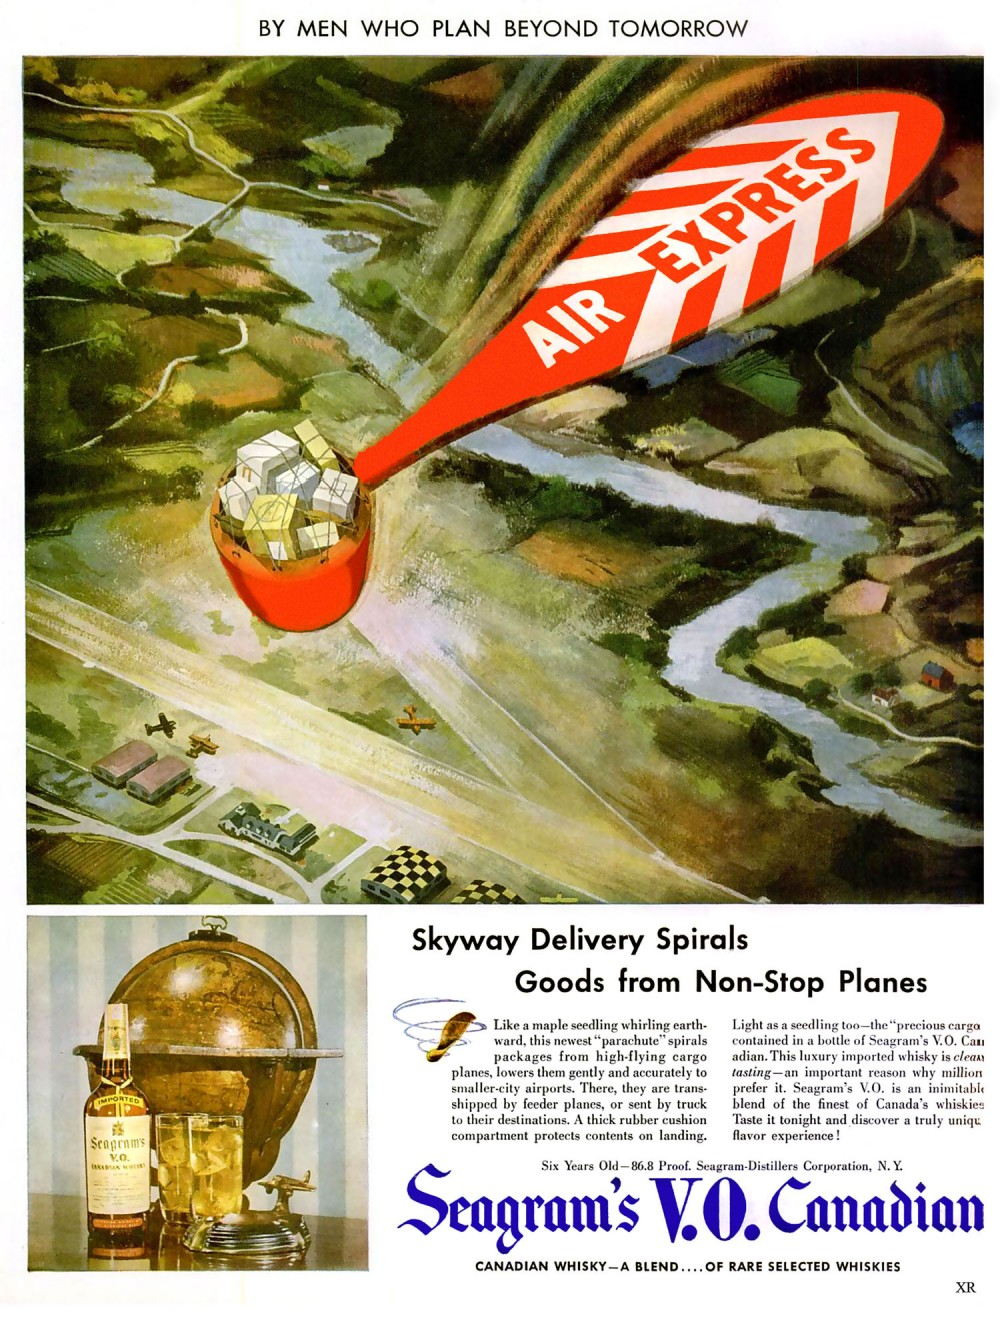 1947 - MWPBT Skyway Delivery Spirals Goods from non-stop Places